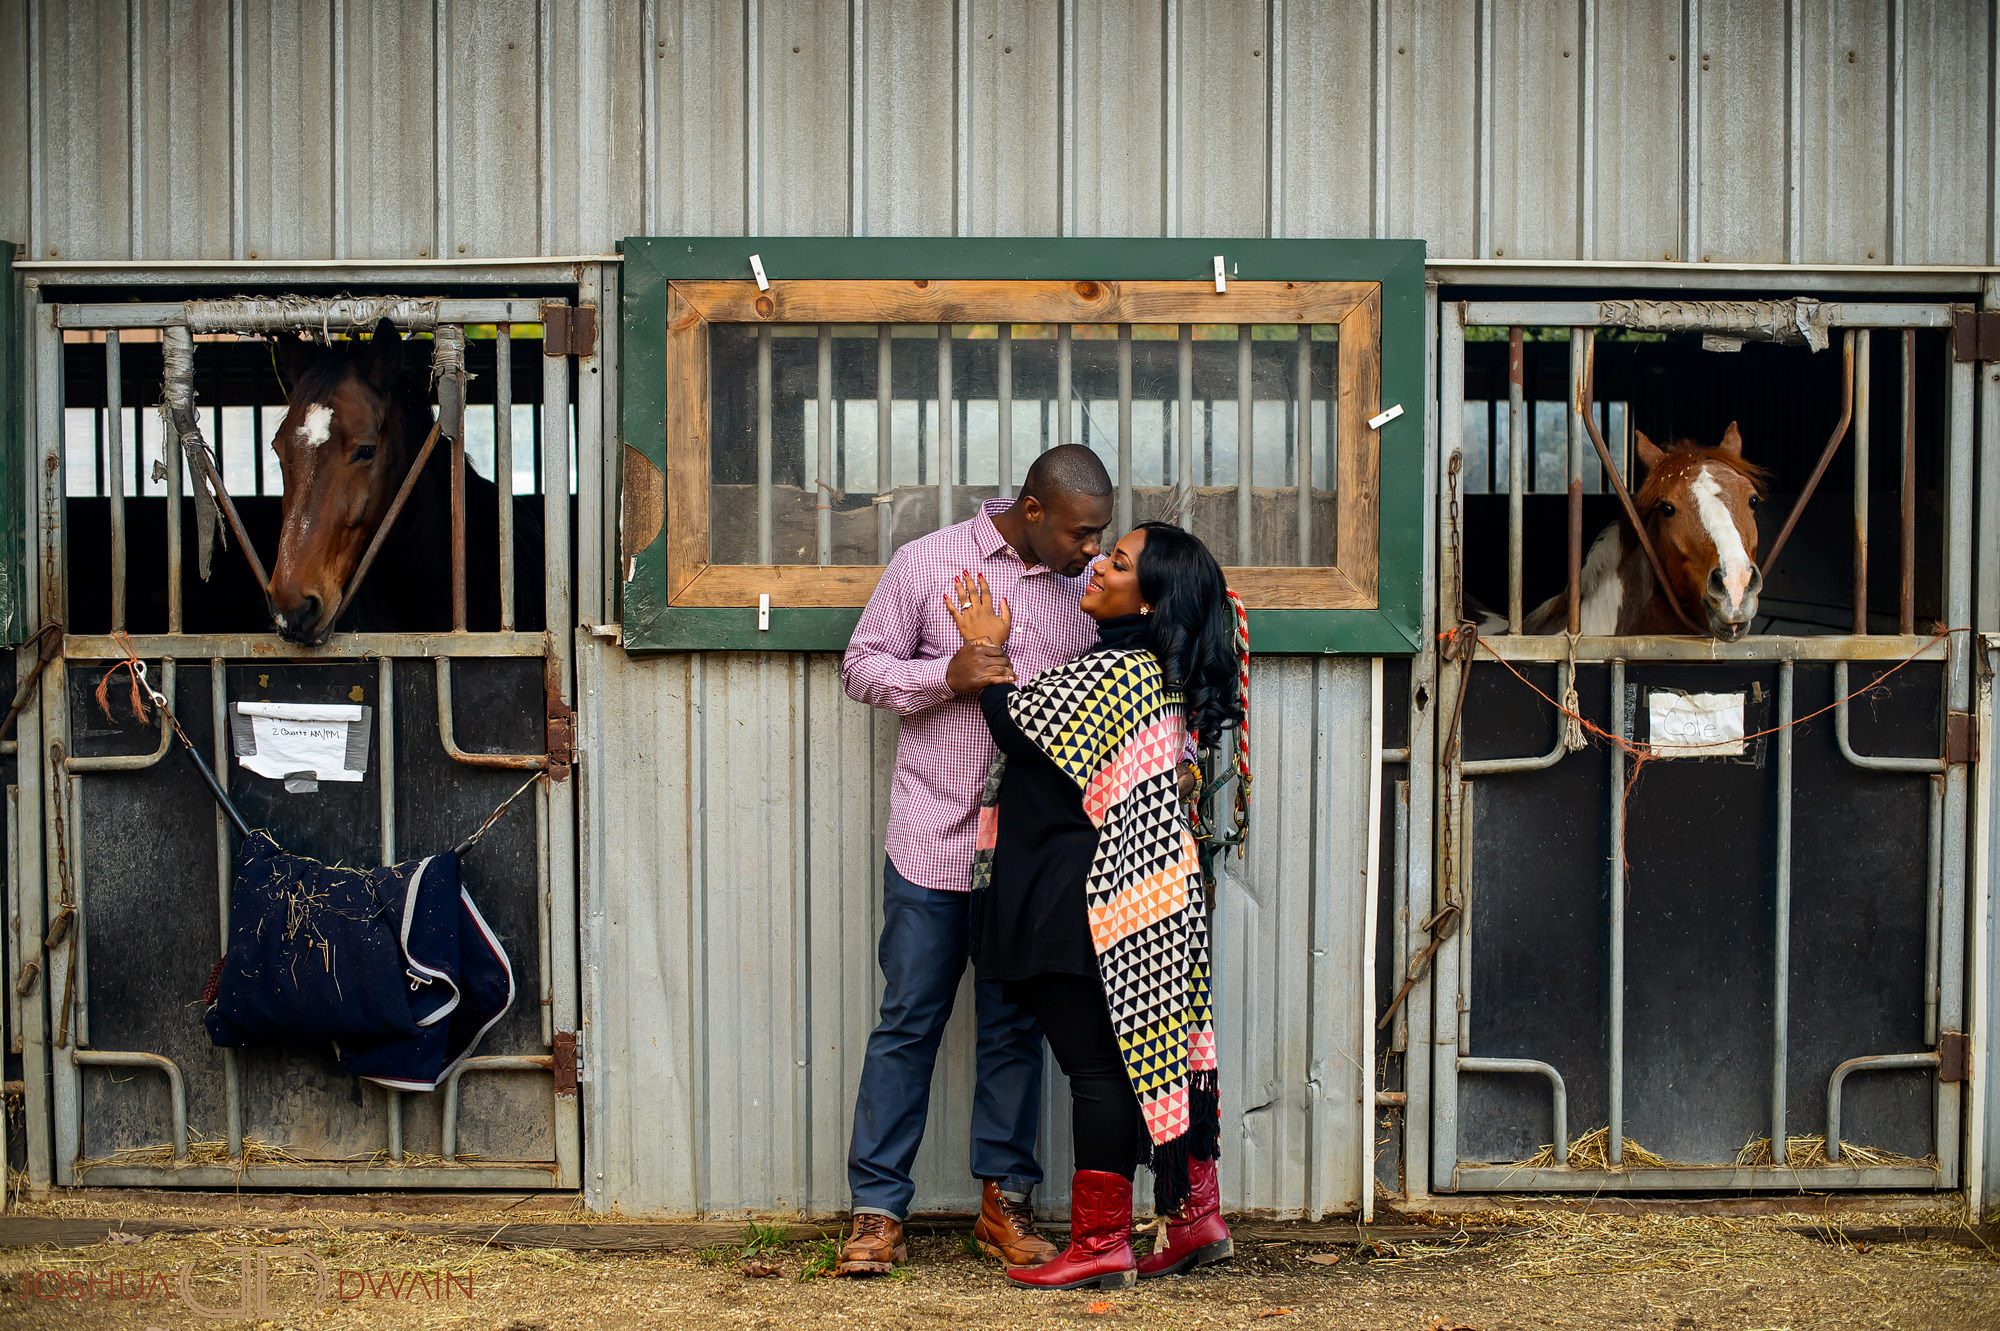 ashley-william-008-Sweet-Hills-Riding-Center -Long-Island-NY-engagement-wedding-photographer-joshua-dwain